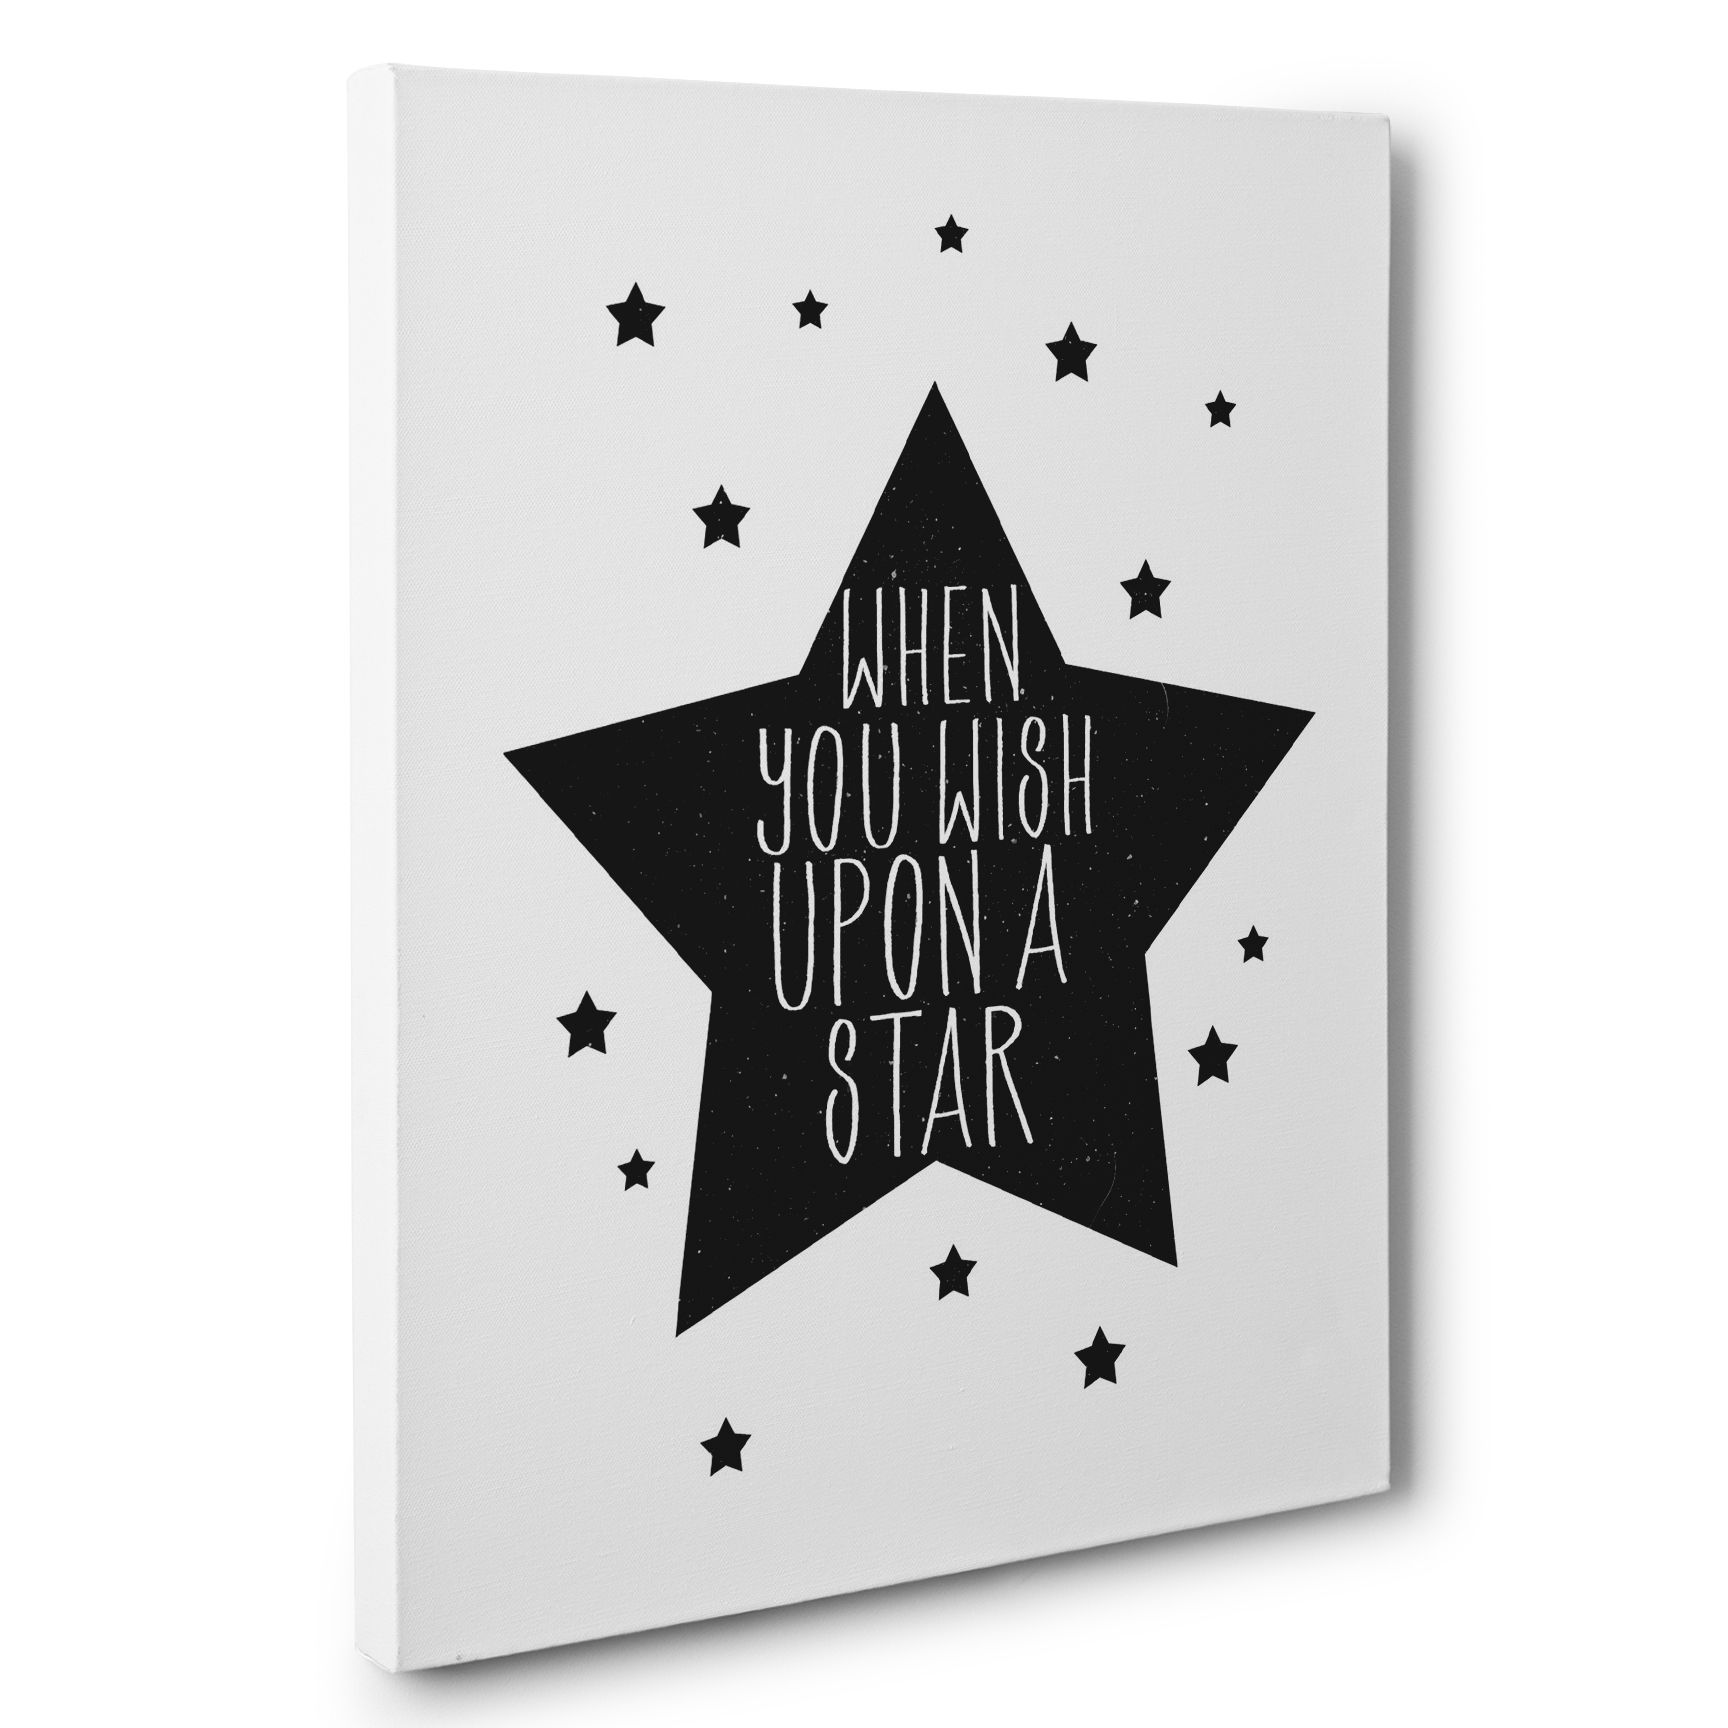 Buy Hand Made When You Wish Upon A Star Canvas Wall Art Made To Order From Paper Blast Custommade Com